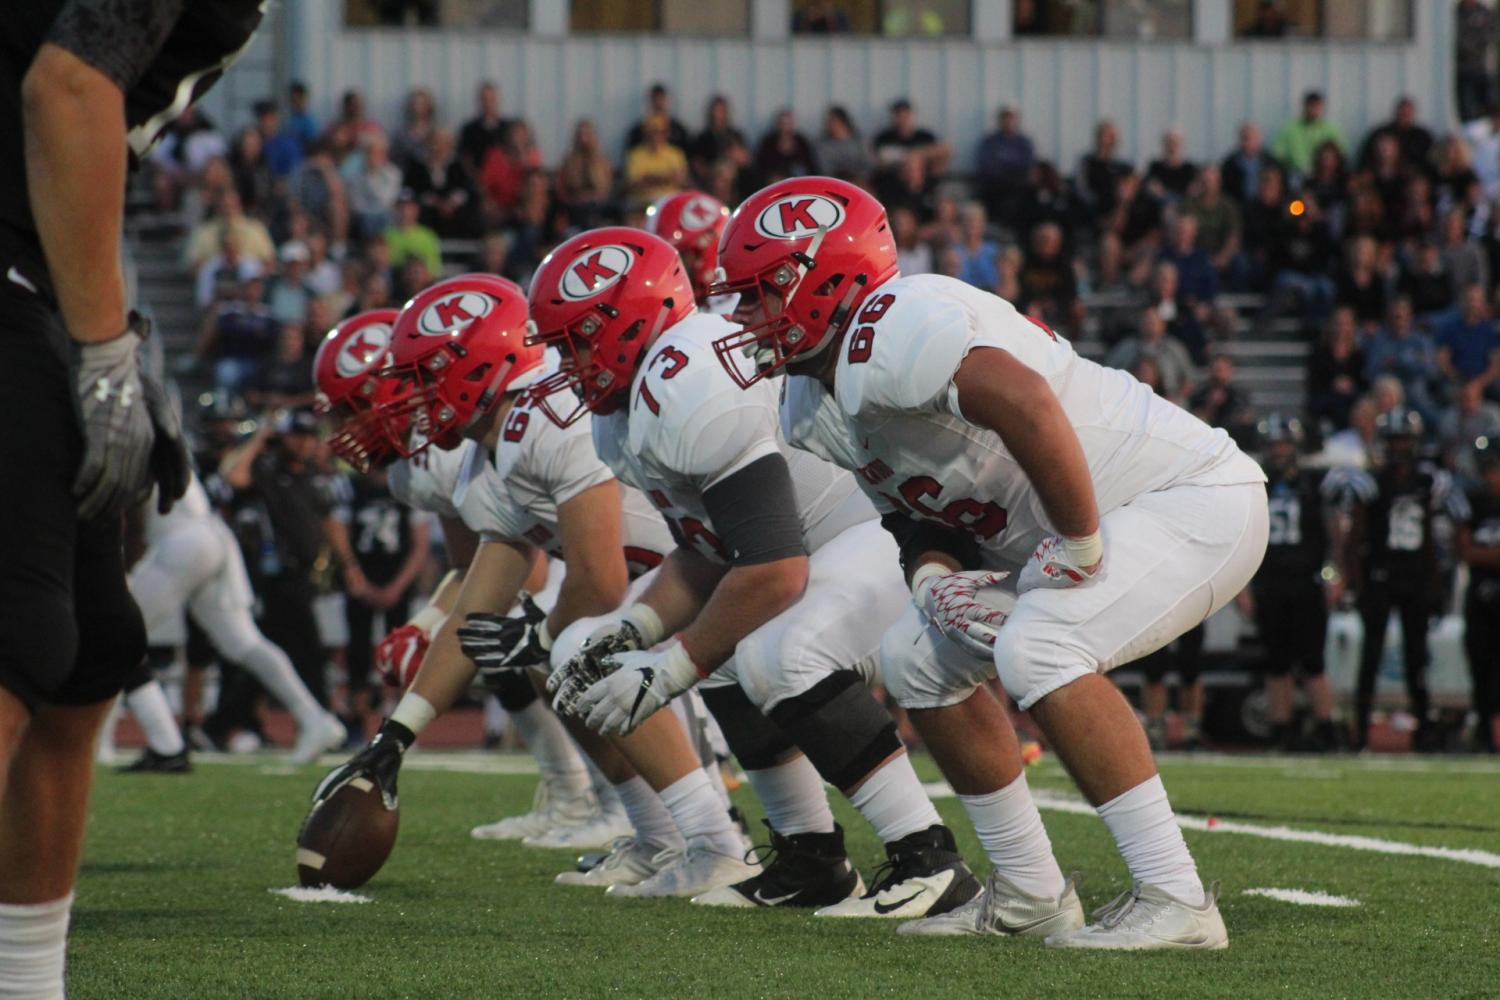 Football players prepare to spike the ball.